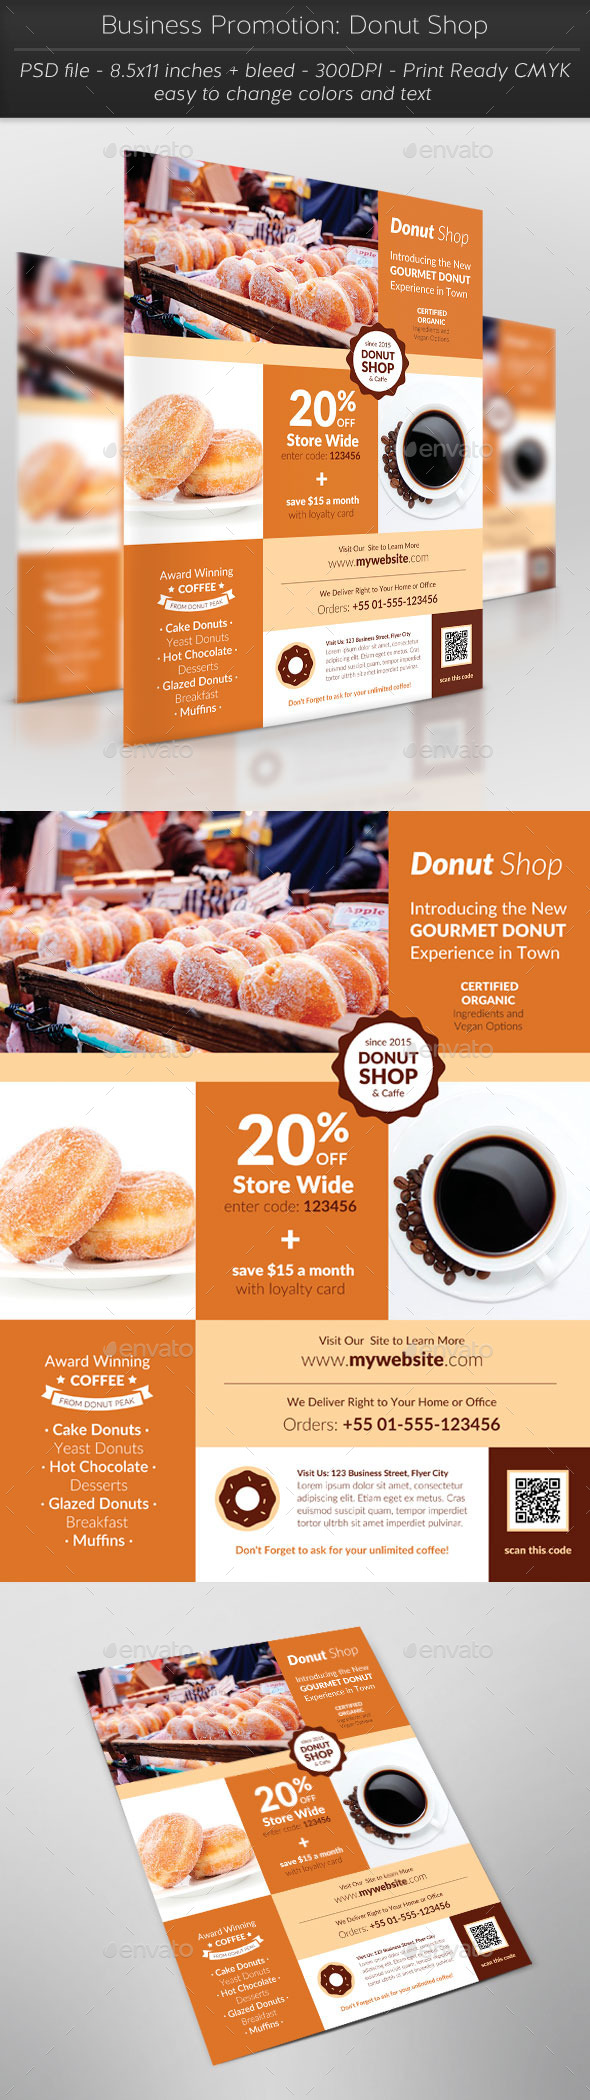 GraphicRiver Business Promotion Donut Shop 11380968